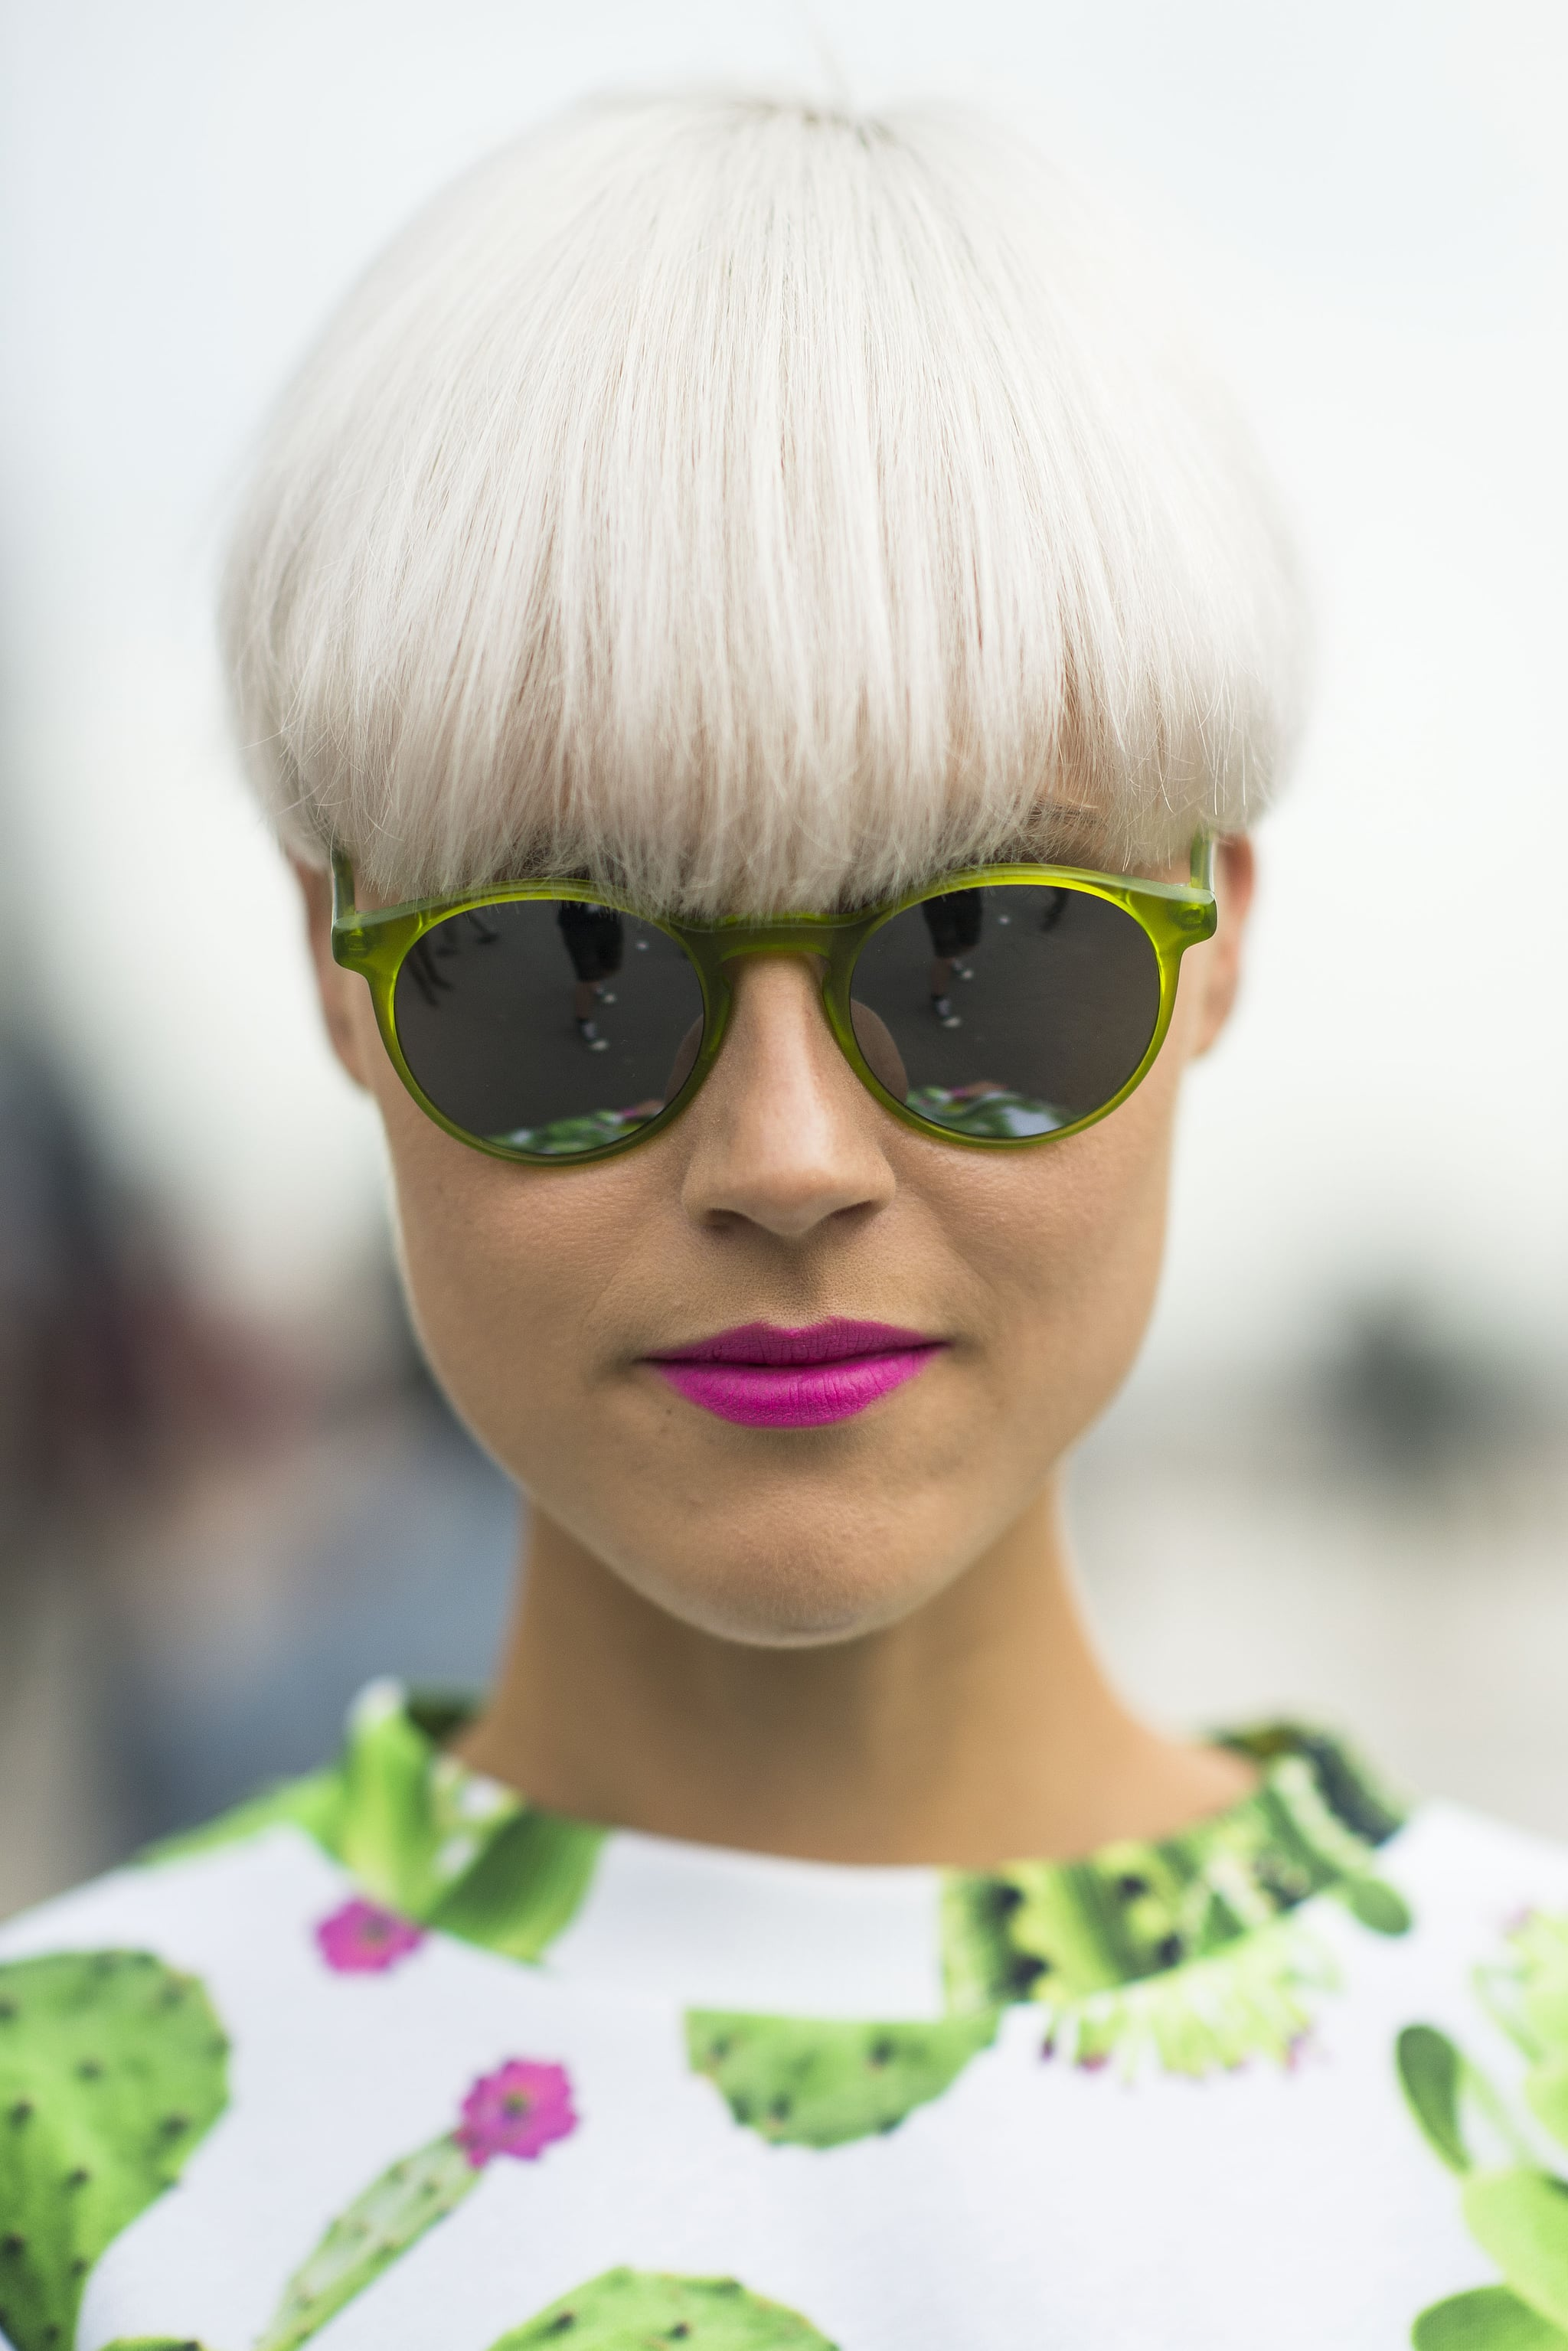 The best pairing for white hair? Bright pink lipstick, of course. Source: Le 21ème | Adam Katz Sinding